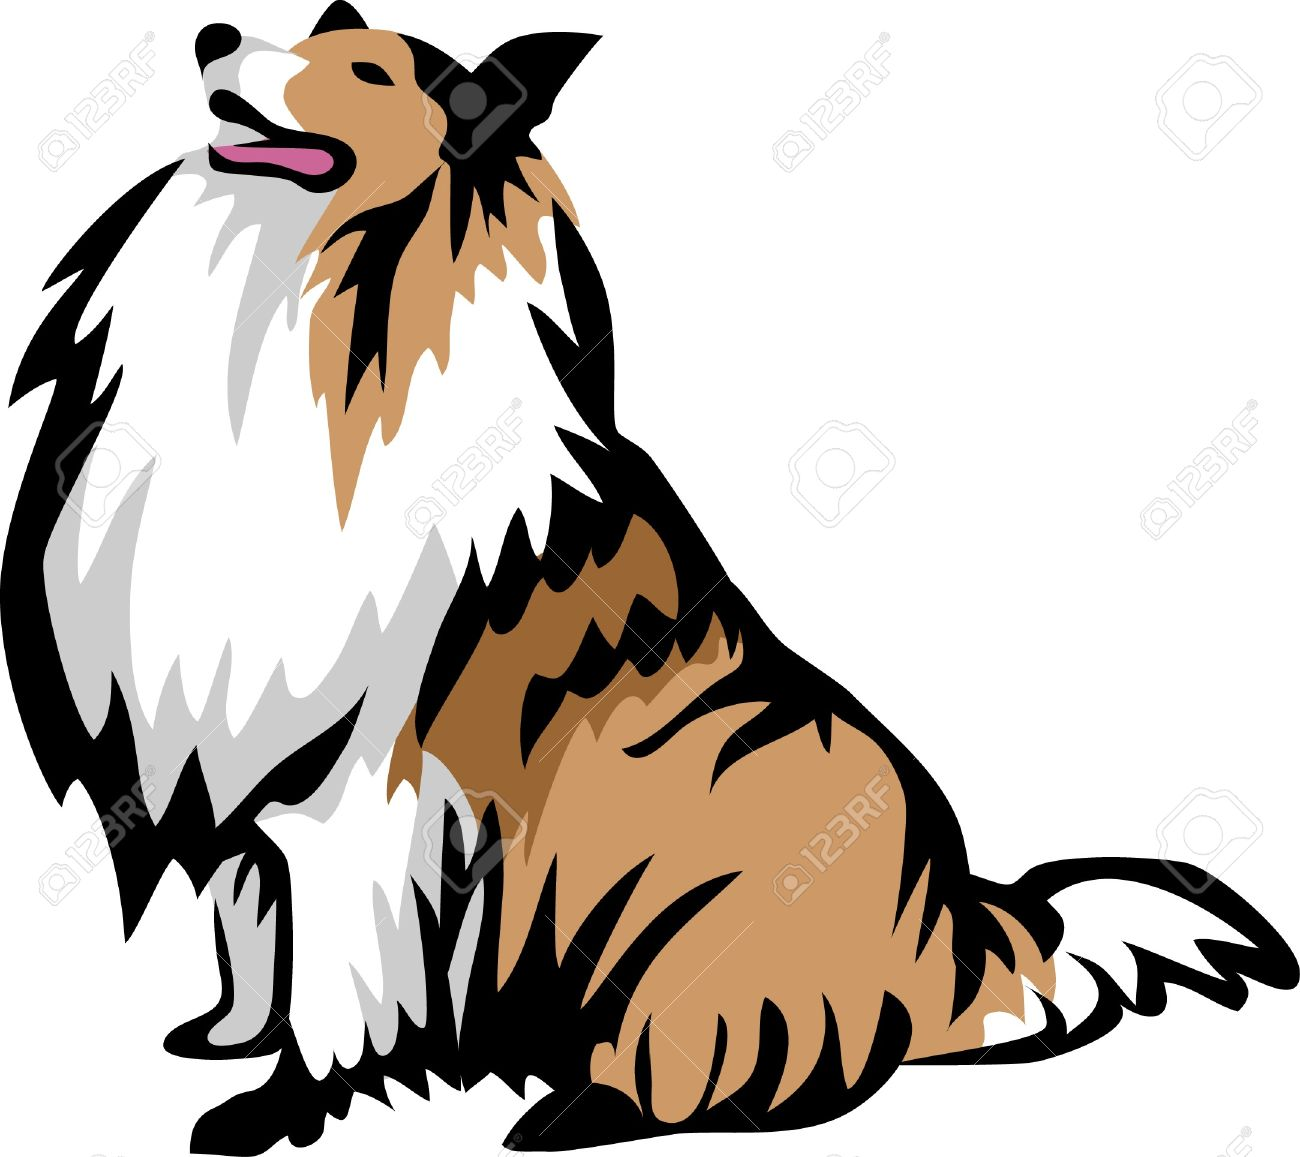 1 686 collie stock vector illustration and royalty free collie clipart rh 123rf com collie dog clip art working border collie clip art